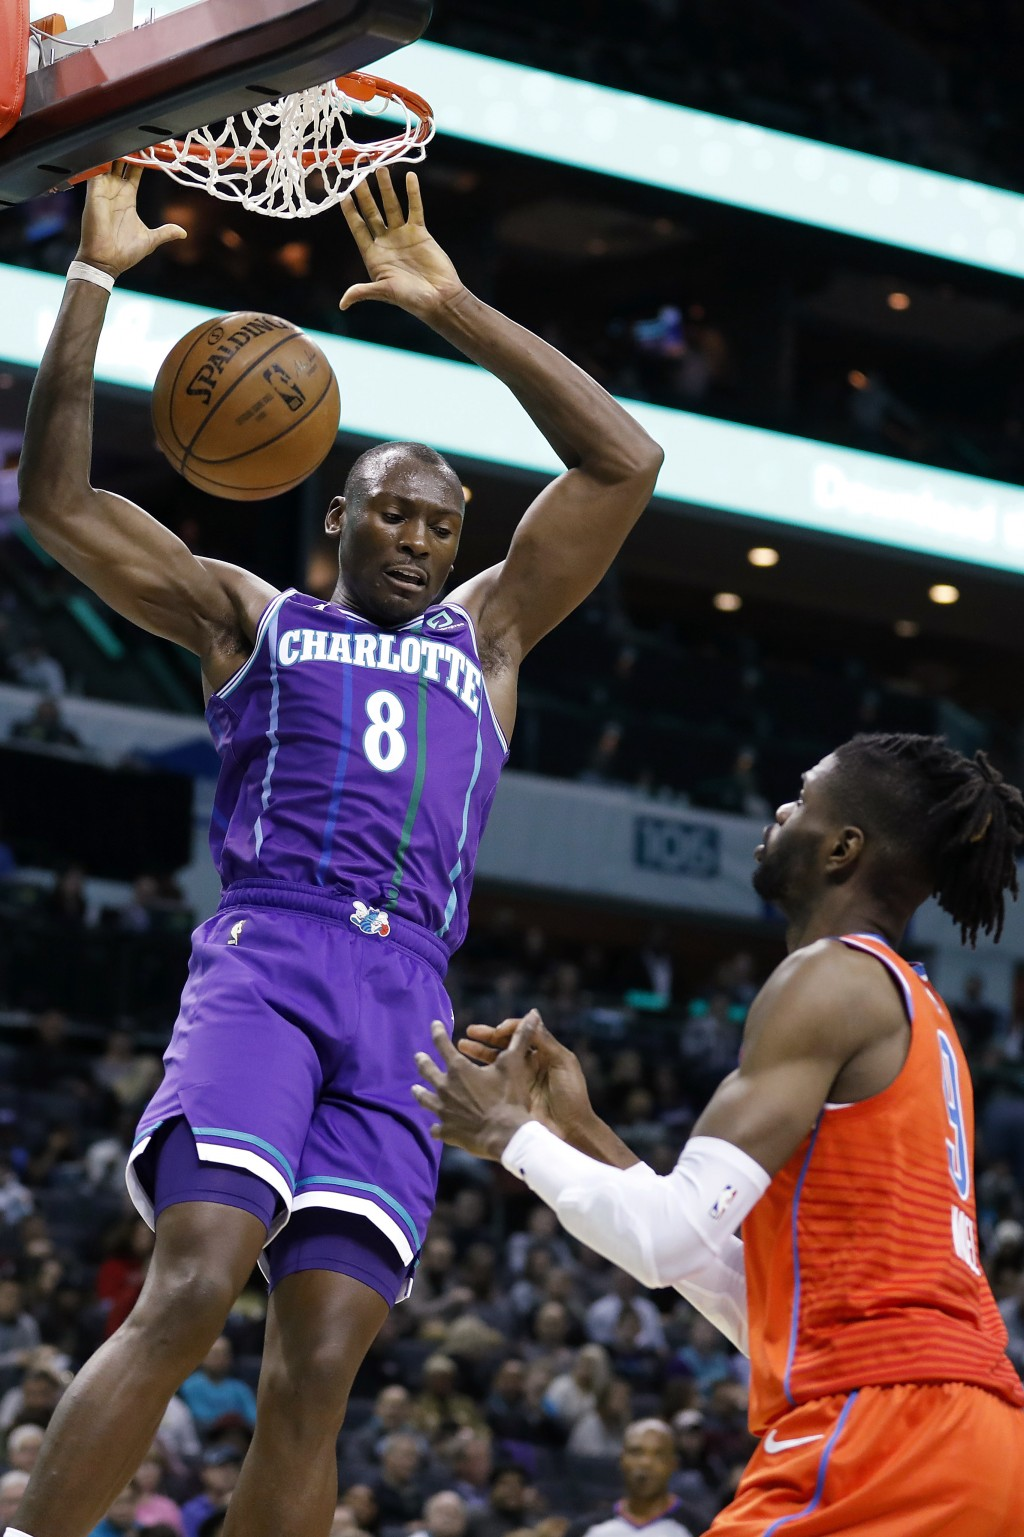 Charlotte Hornets' Bismack Biyombo (8) dunks as Oklahoma City Thunder's Nerlens Noel (9) watches during the first half of an NBA basketball game in Ch...